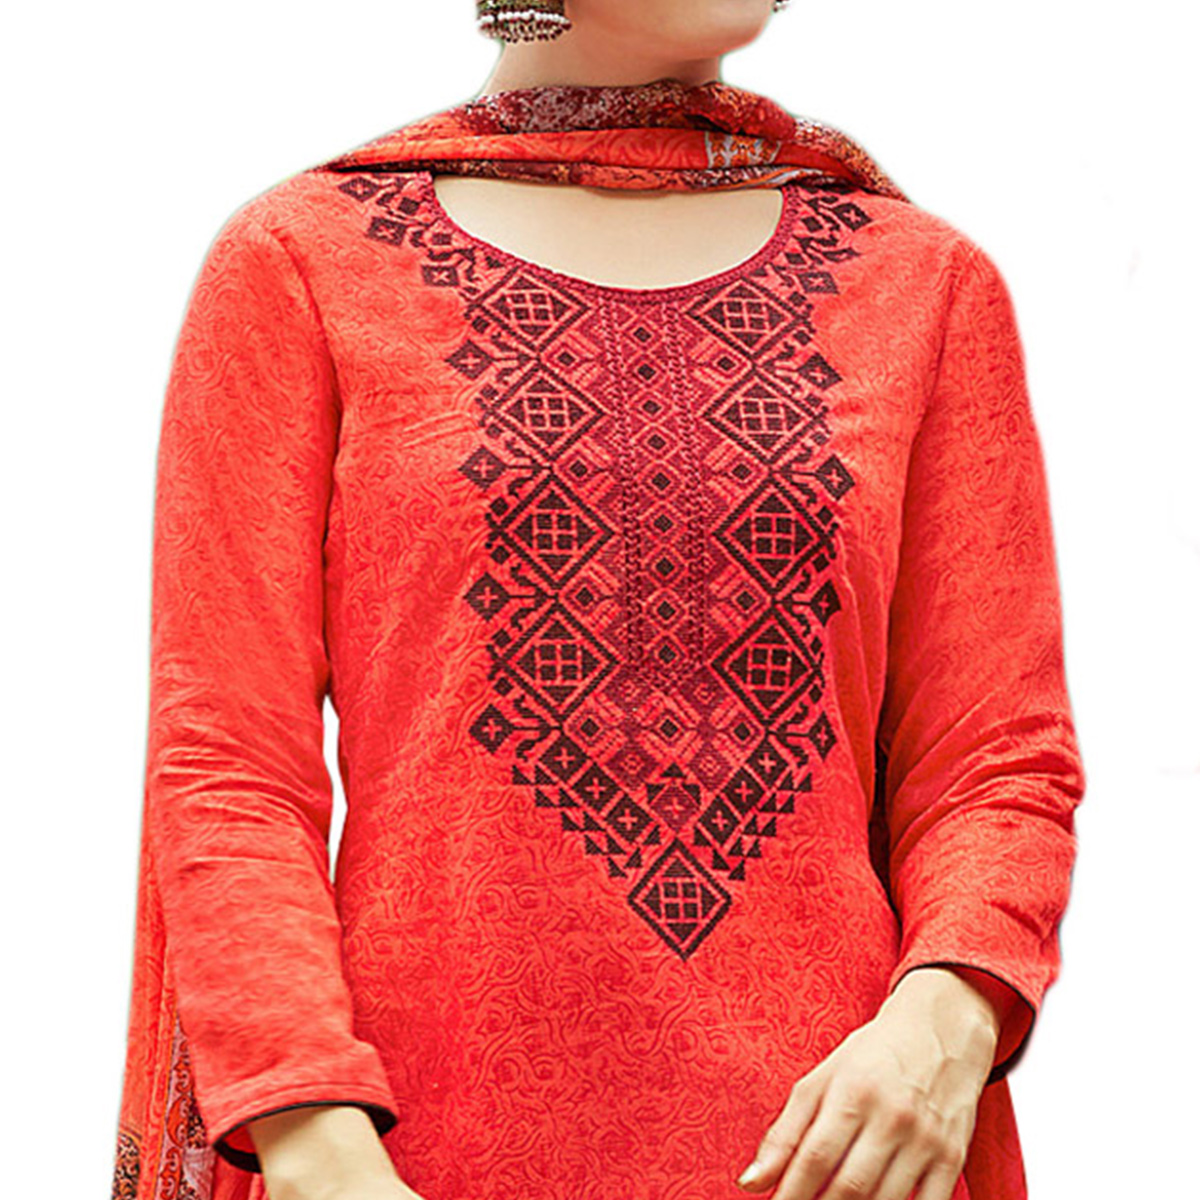 Opulent Red Colored Designer Embroidered Cotton Suit